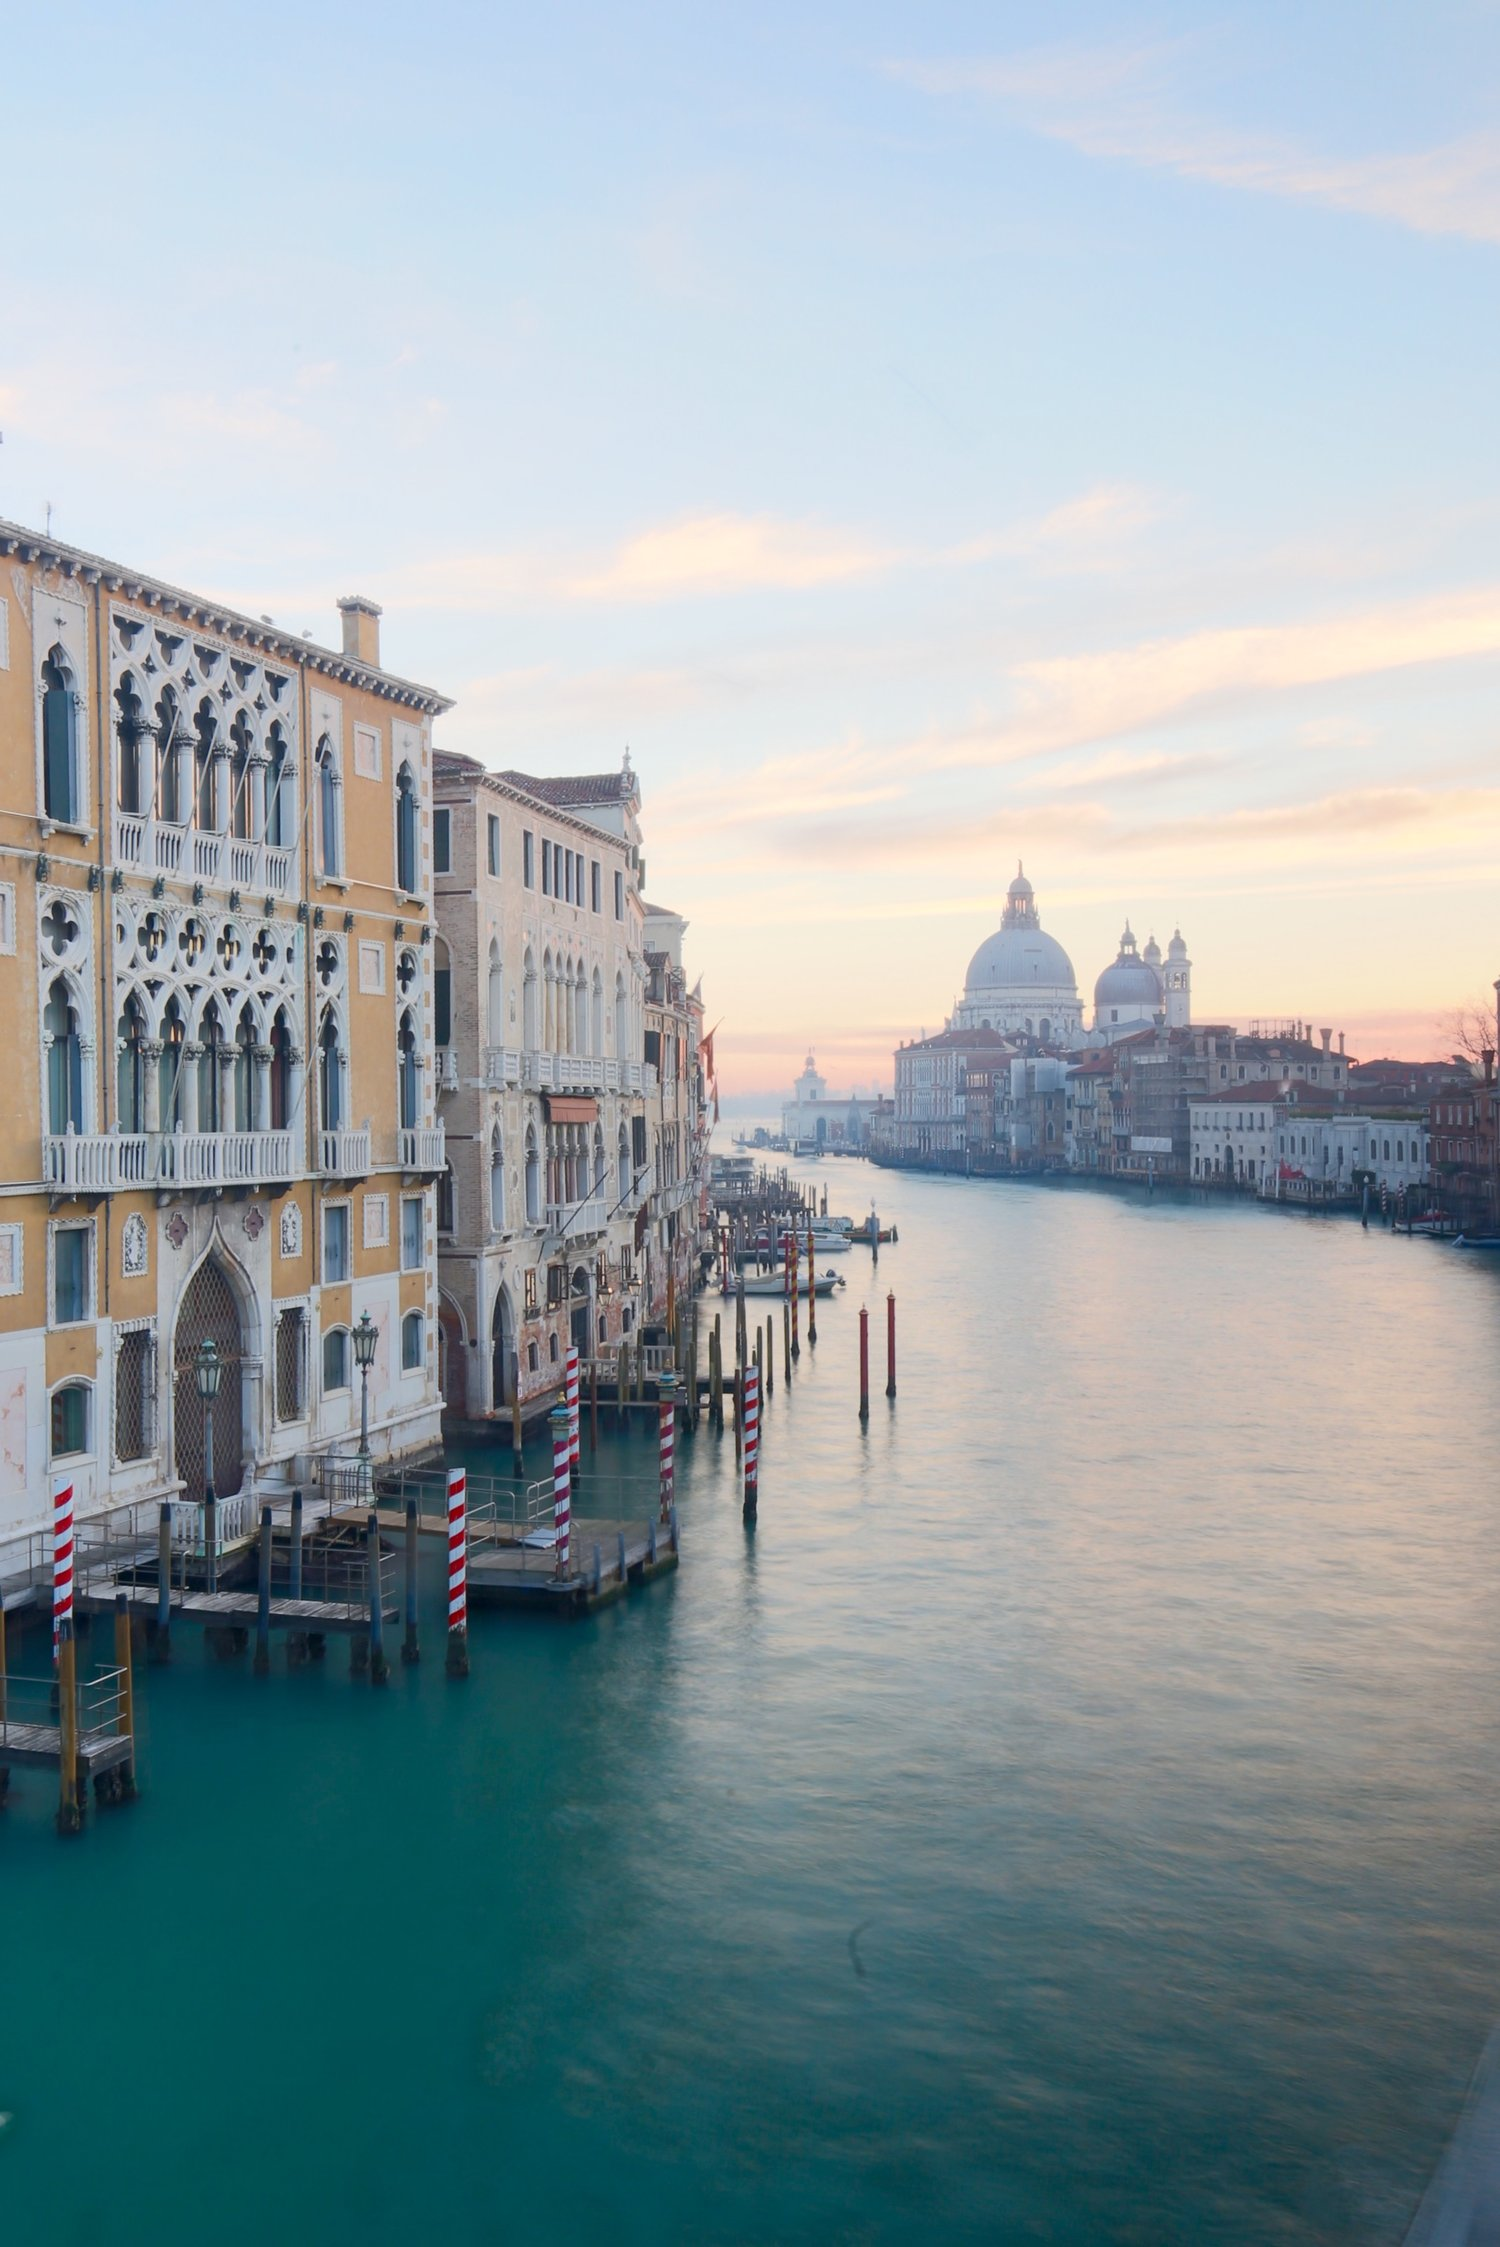 THE RICHES OF VENICE